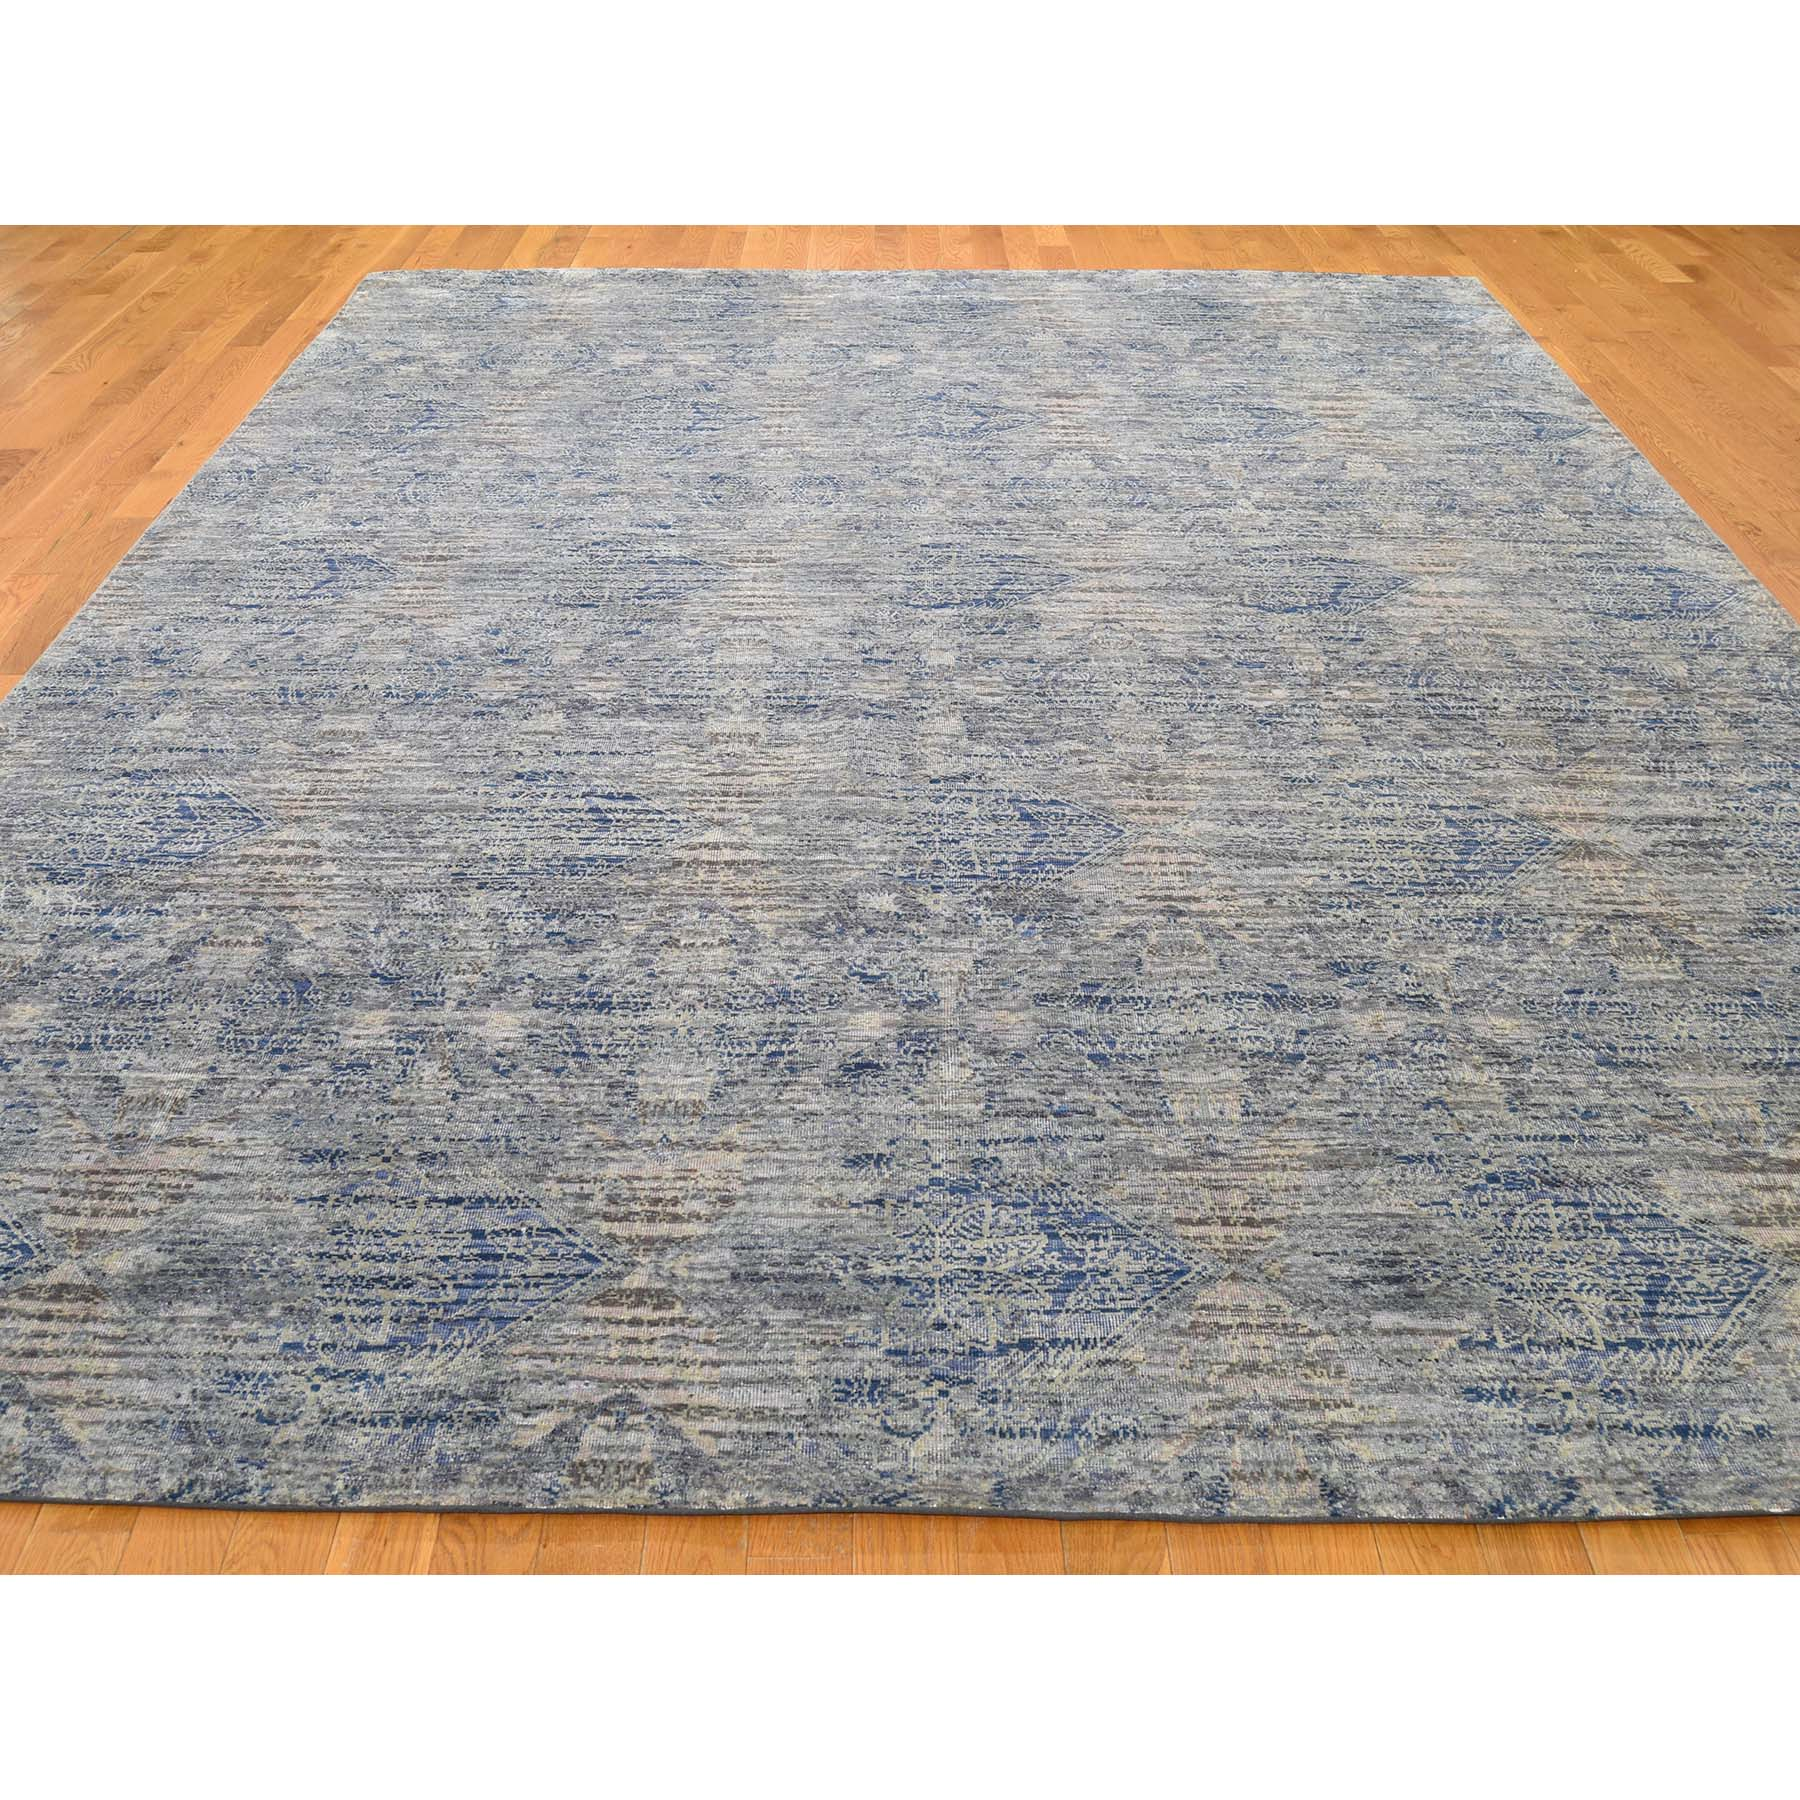 8-9 x12- Silk With Oxidized Wool Denim Blue Erased Rossette Design Hand-Knotted Oriental Rug